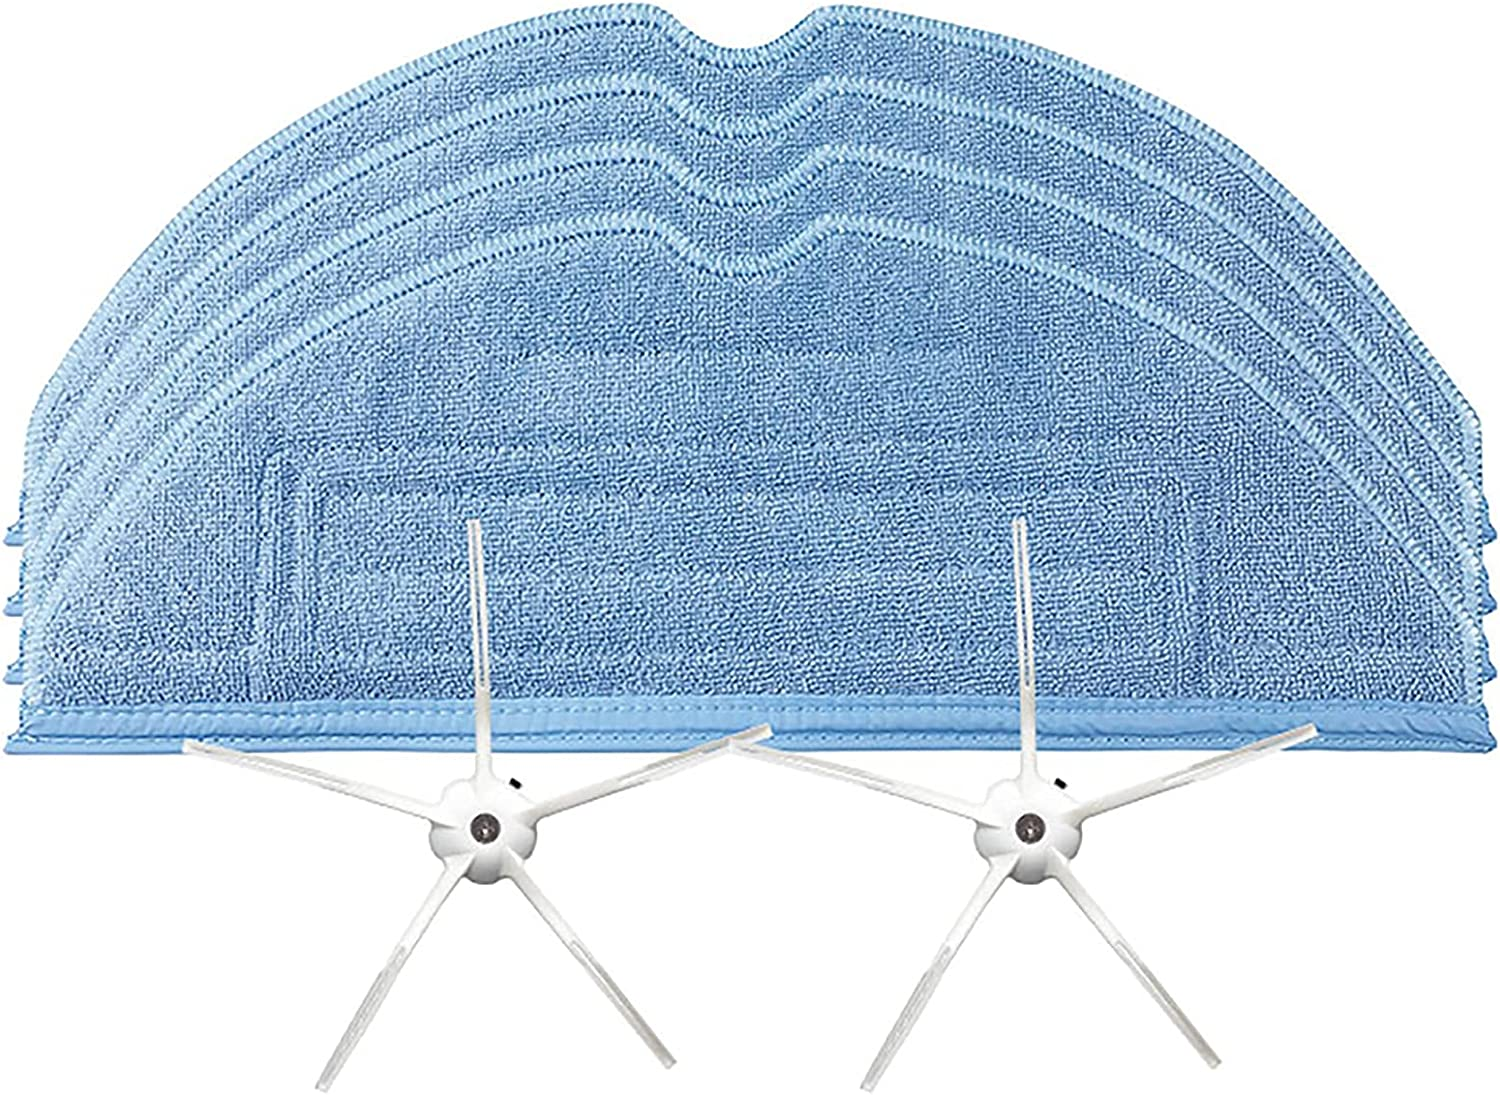 HUAYUWA 67% OFF of fixed price 100% quality warranty! 4 Pack Mop Cloth Cleaning Pads 2 with Pentagon Head